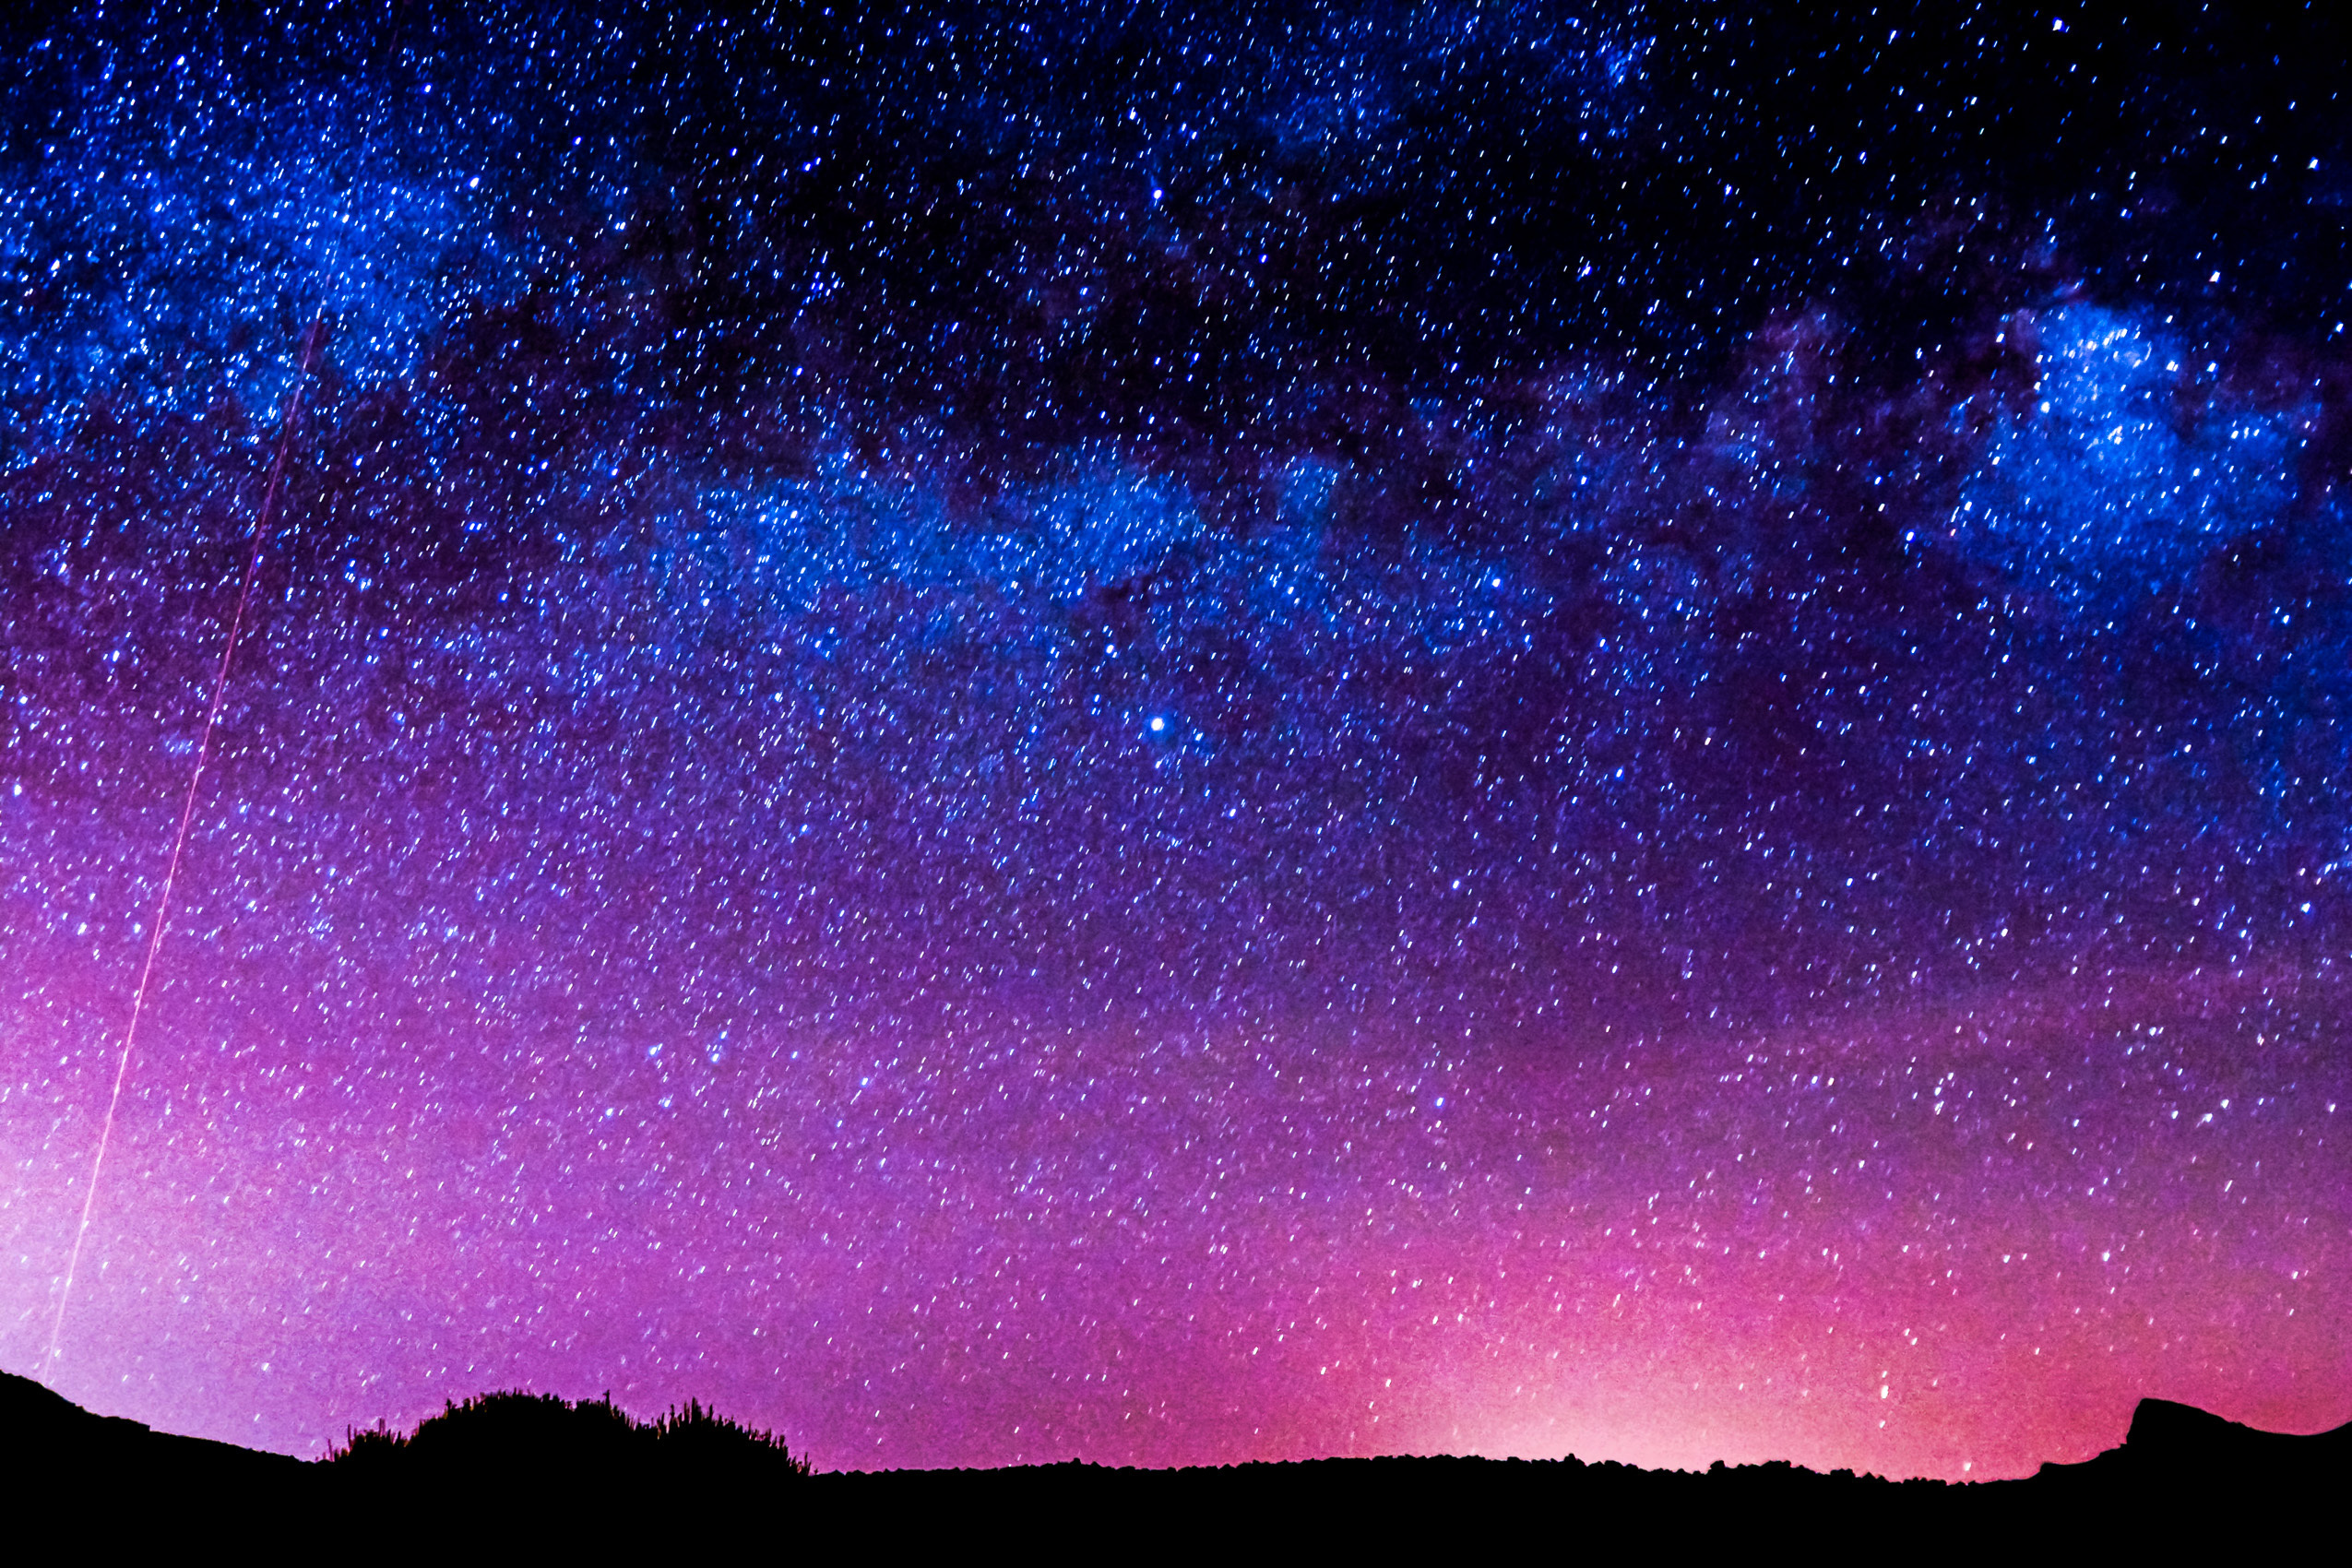 A new study has revealed that many nocturnal animals rely on light from the stars to navigate their way through the dark.